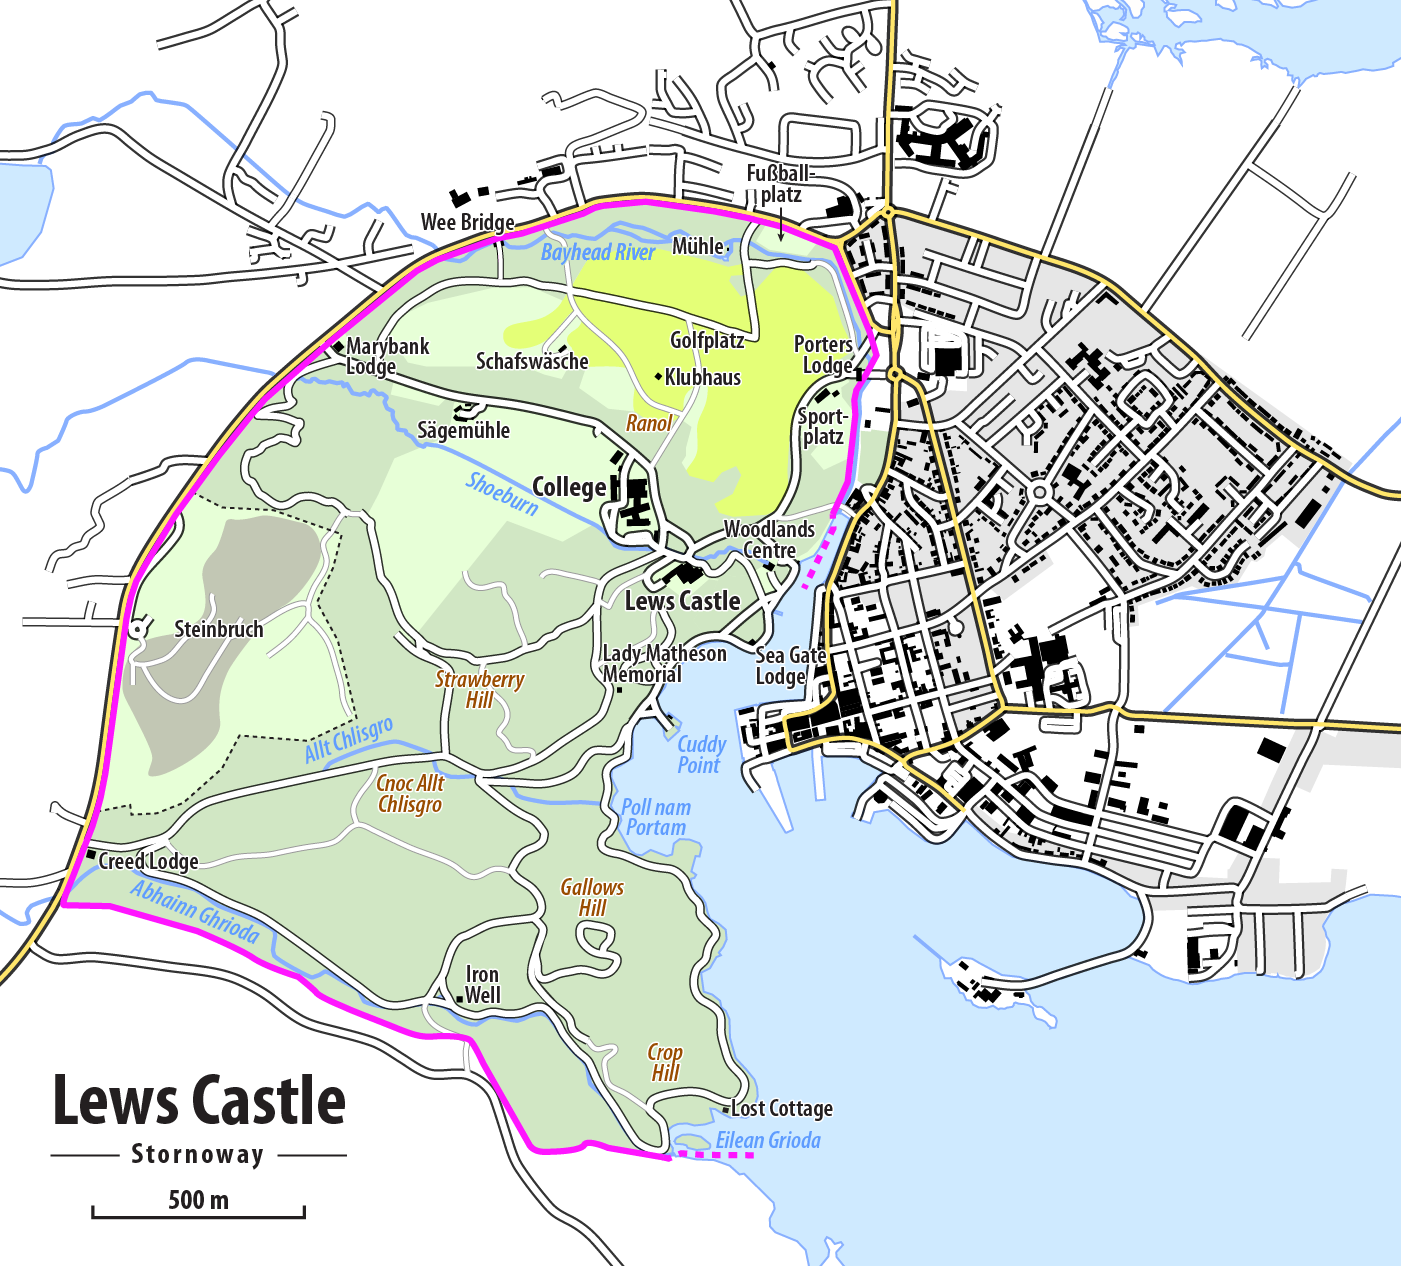 File:Map of Lews Castle.png - Wikimedia Commons on map of a school, map of european castles, map of a restaurant, map of castles in england, map of a submarine, map of a dragon, map of a stadium, map of a medieval town, map of castles in germany, map of castles in ireland, elemental air castle, map of a cathedral, map of a volcano, map of a theater, map of a temple, map of a hospital, map of roman ruins, map of a tavern, map of a mountain, map of a mansion,